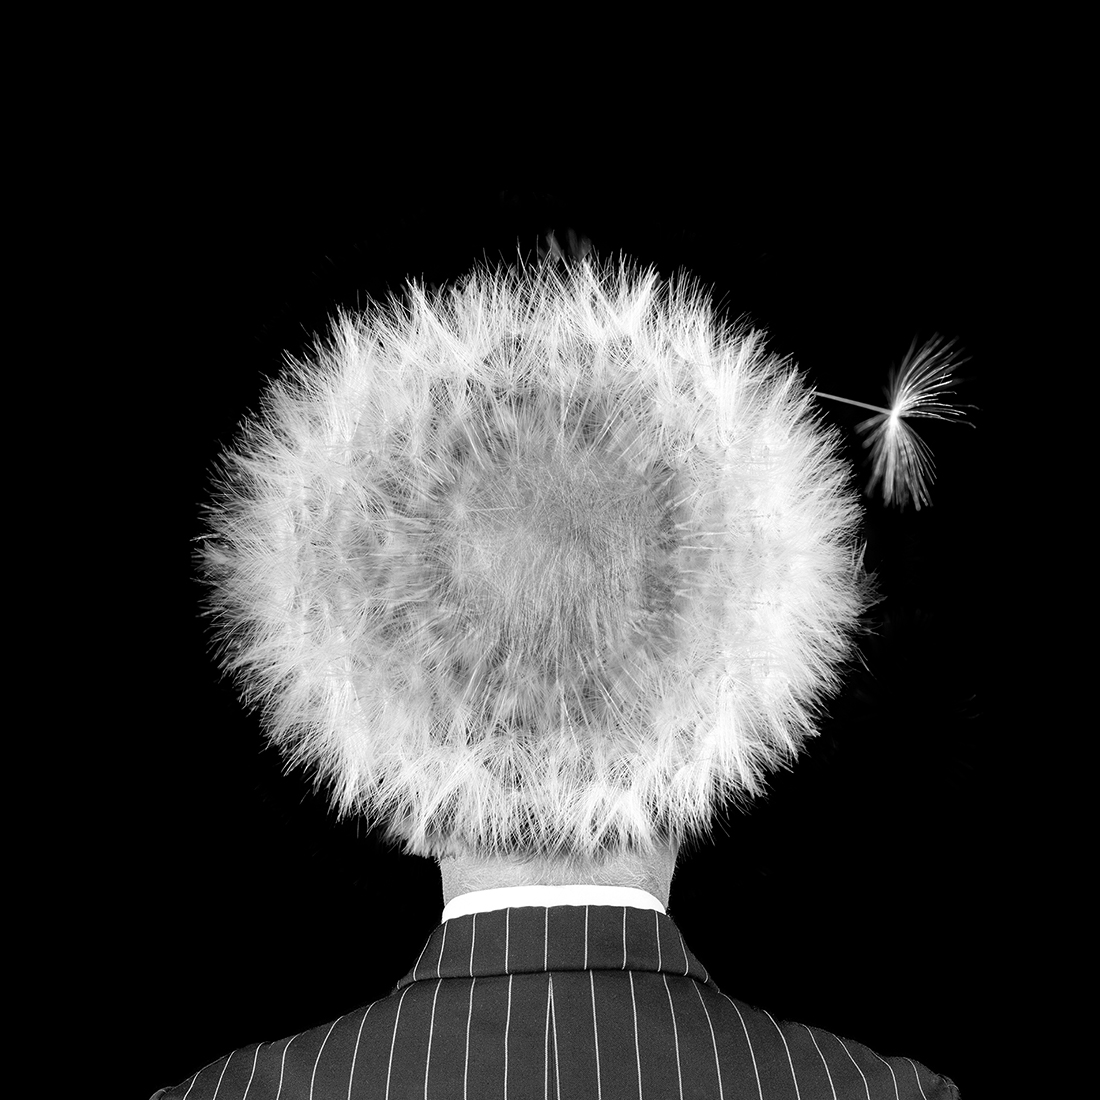 1ST PLACE - Black & White Conceptual PHOTO of the Year 2019, hairloss - Michael Knudsen